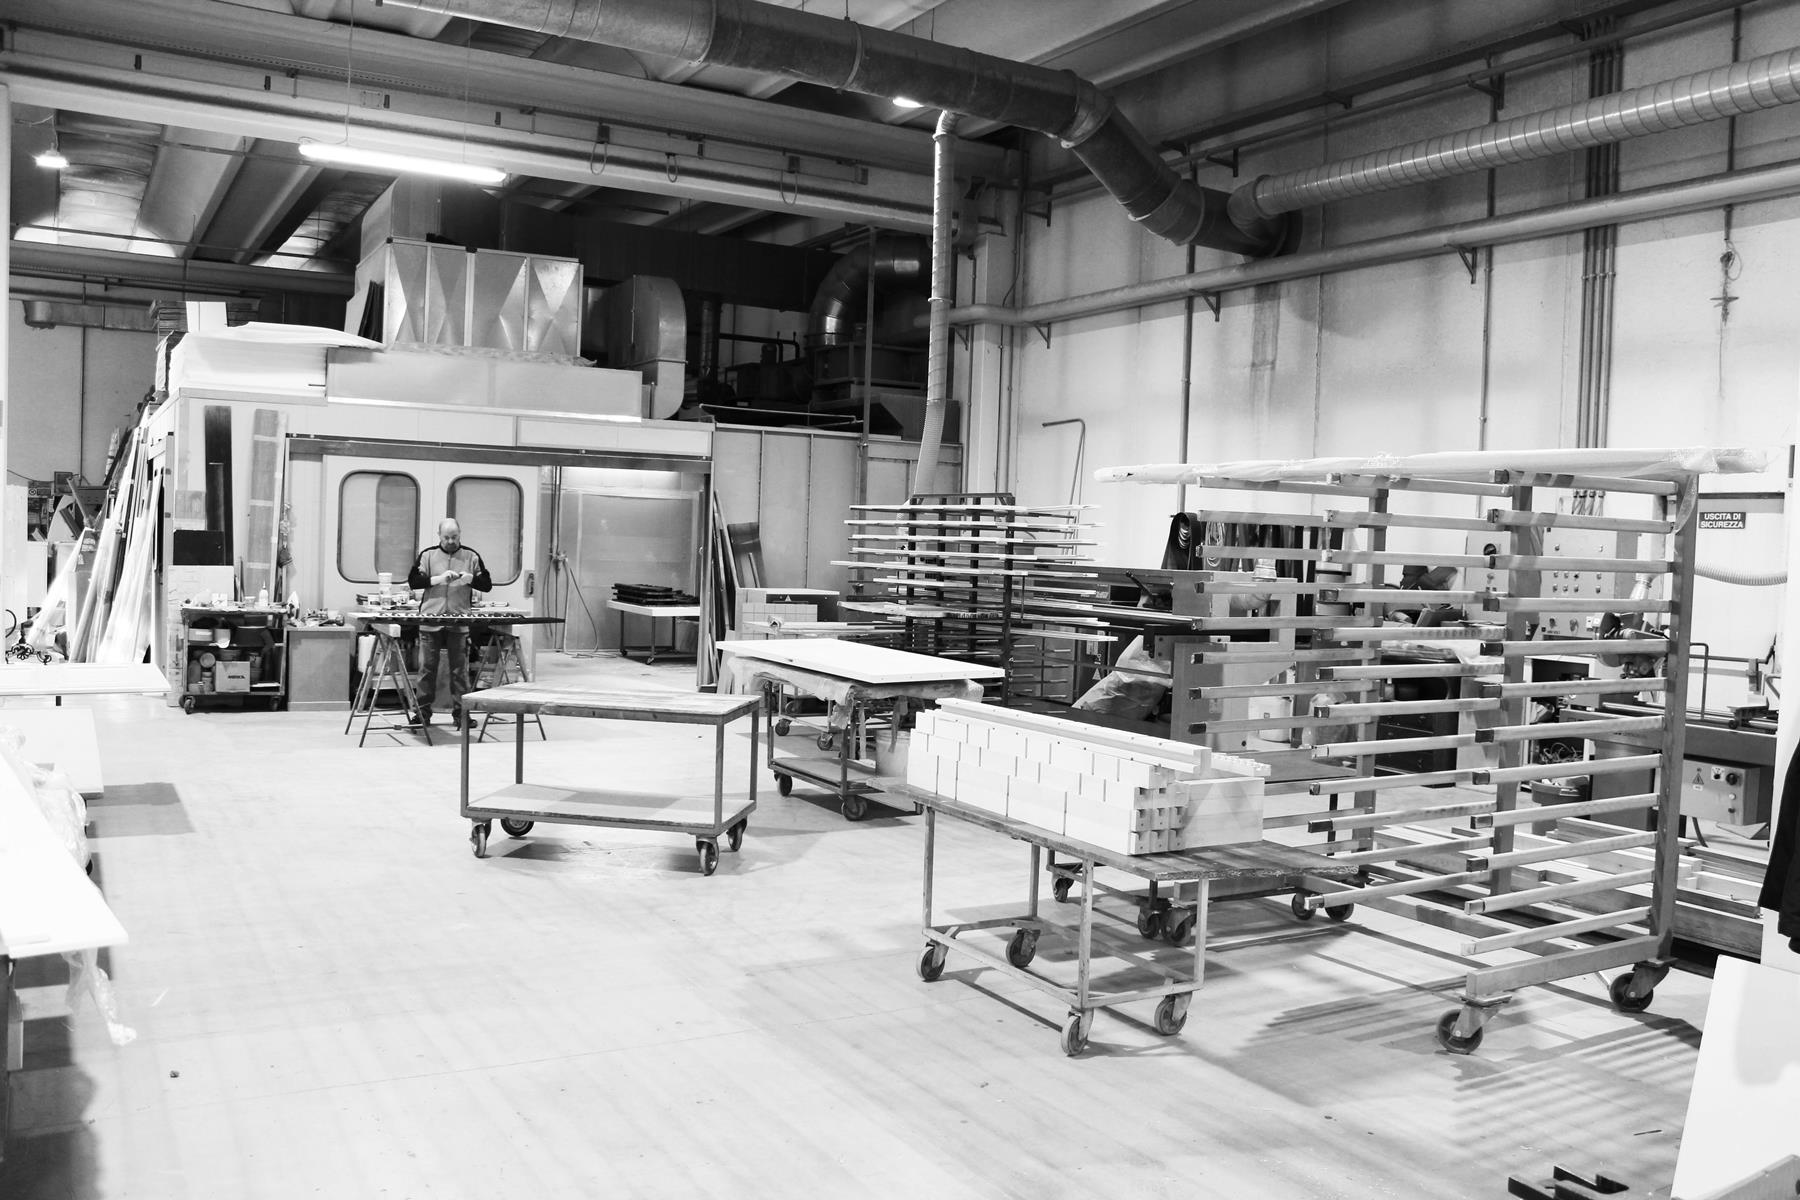 furniture production since 1850 - 9